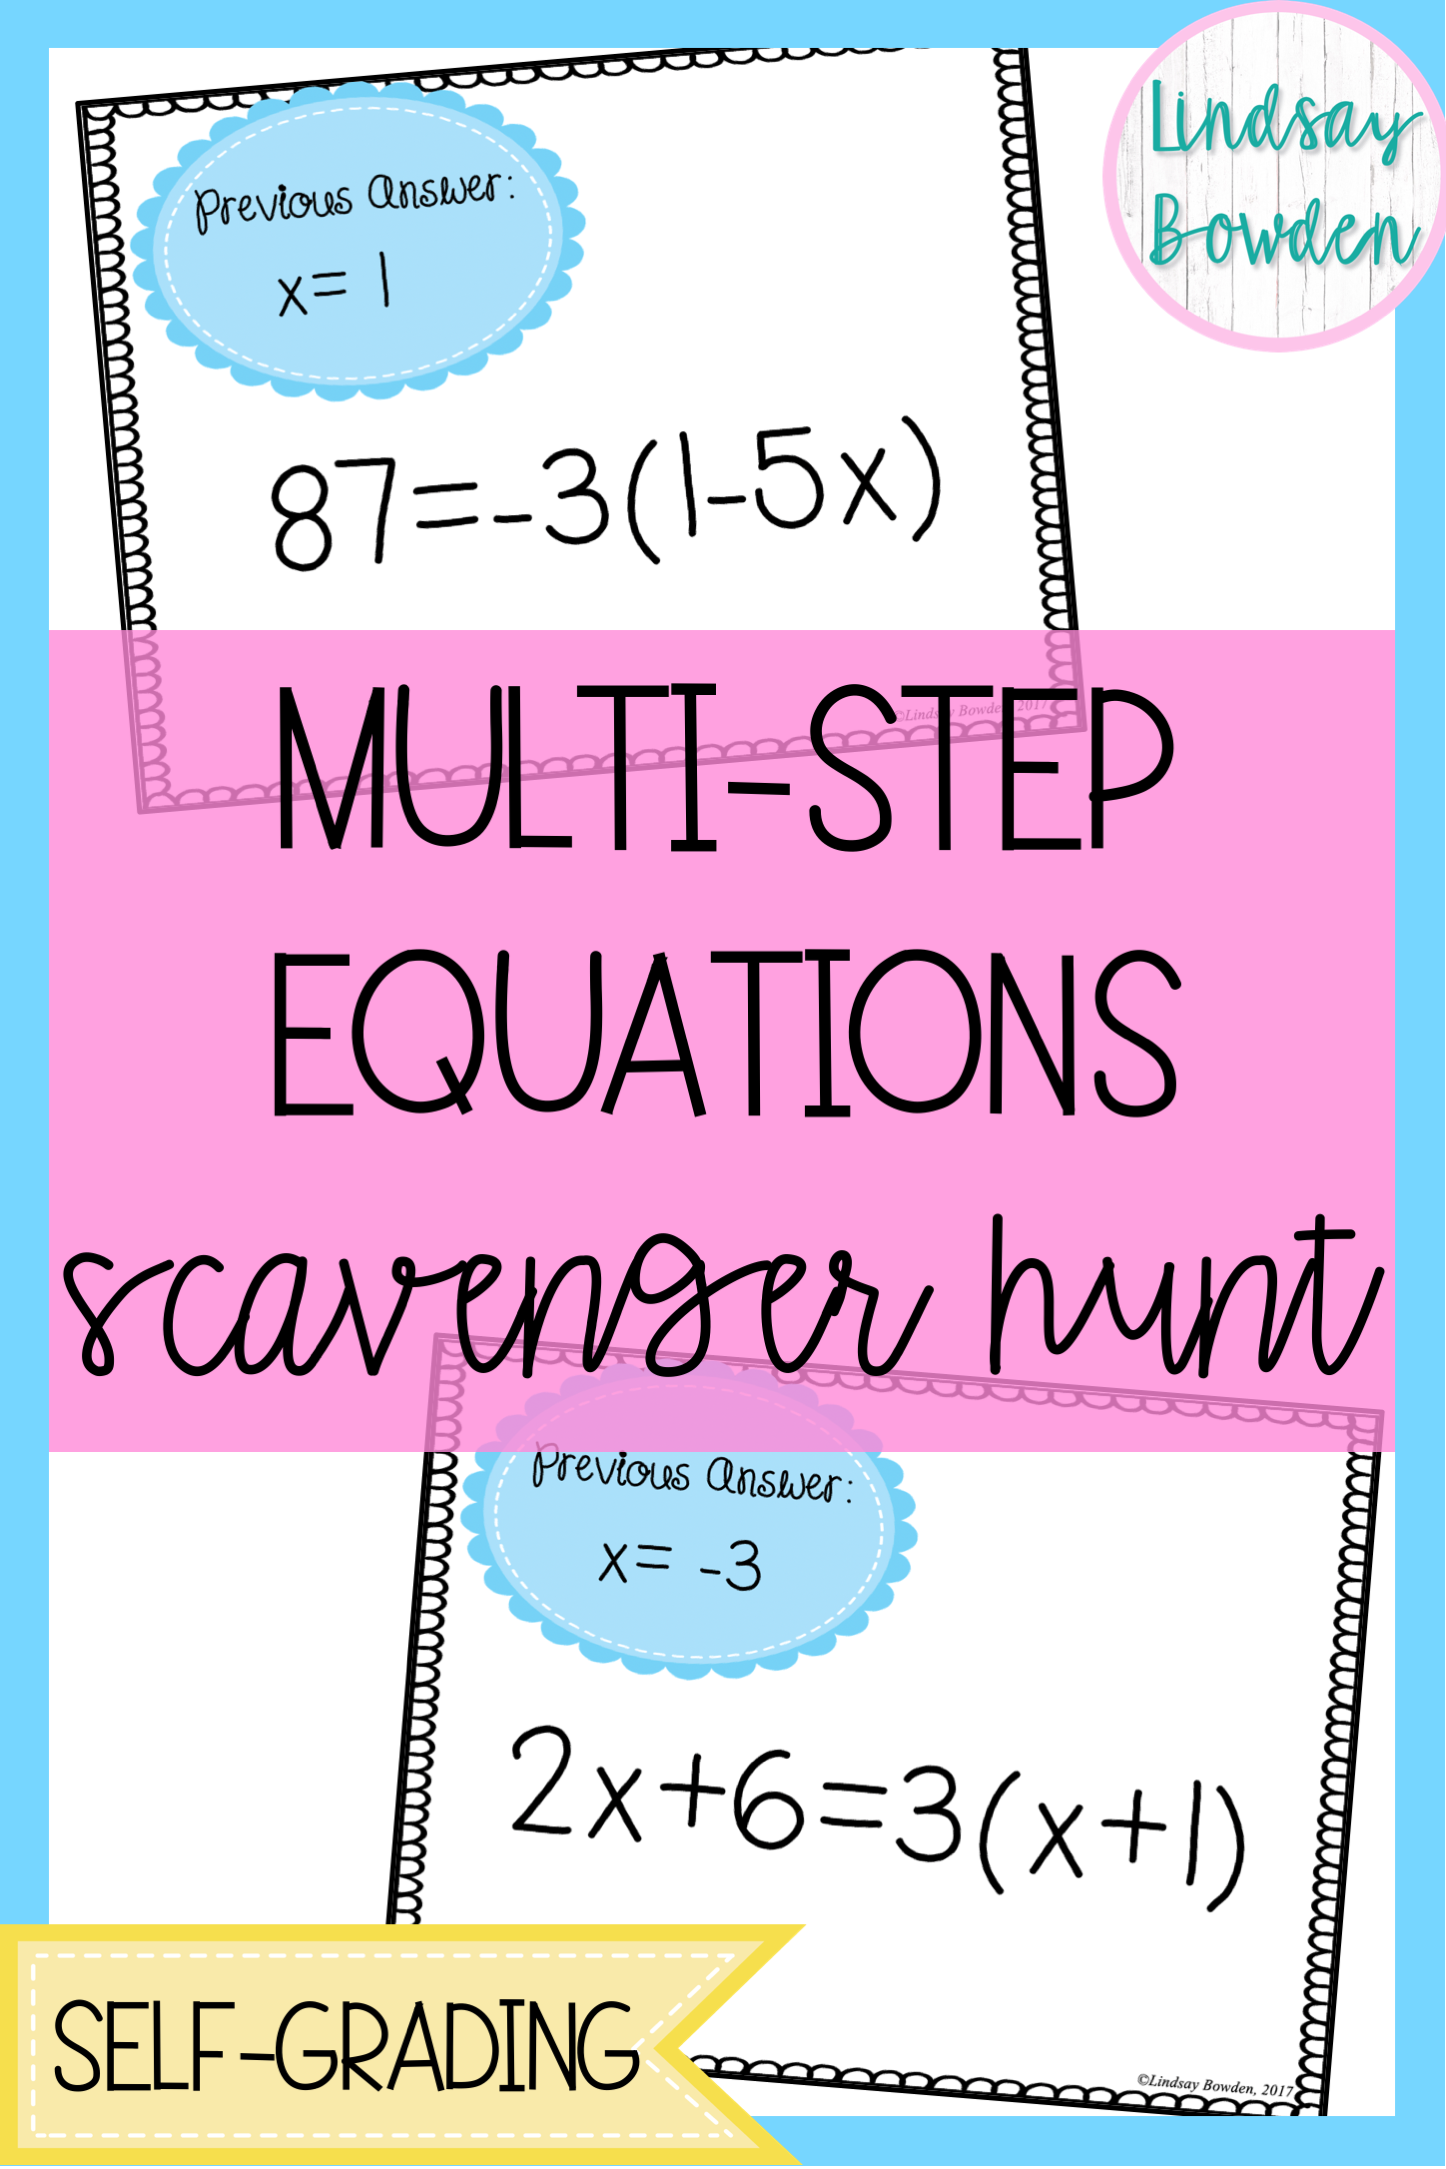 Pin By Annemarie Kimball On Mathing So Hard Multi Step Equations Algebra Activities High School Multi Step Equations Activities [ 2169 x 1446 Pixel ]